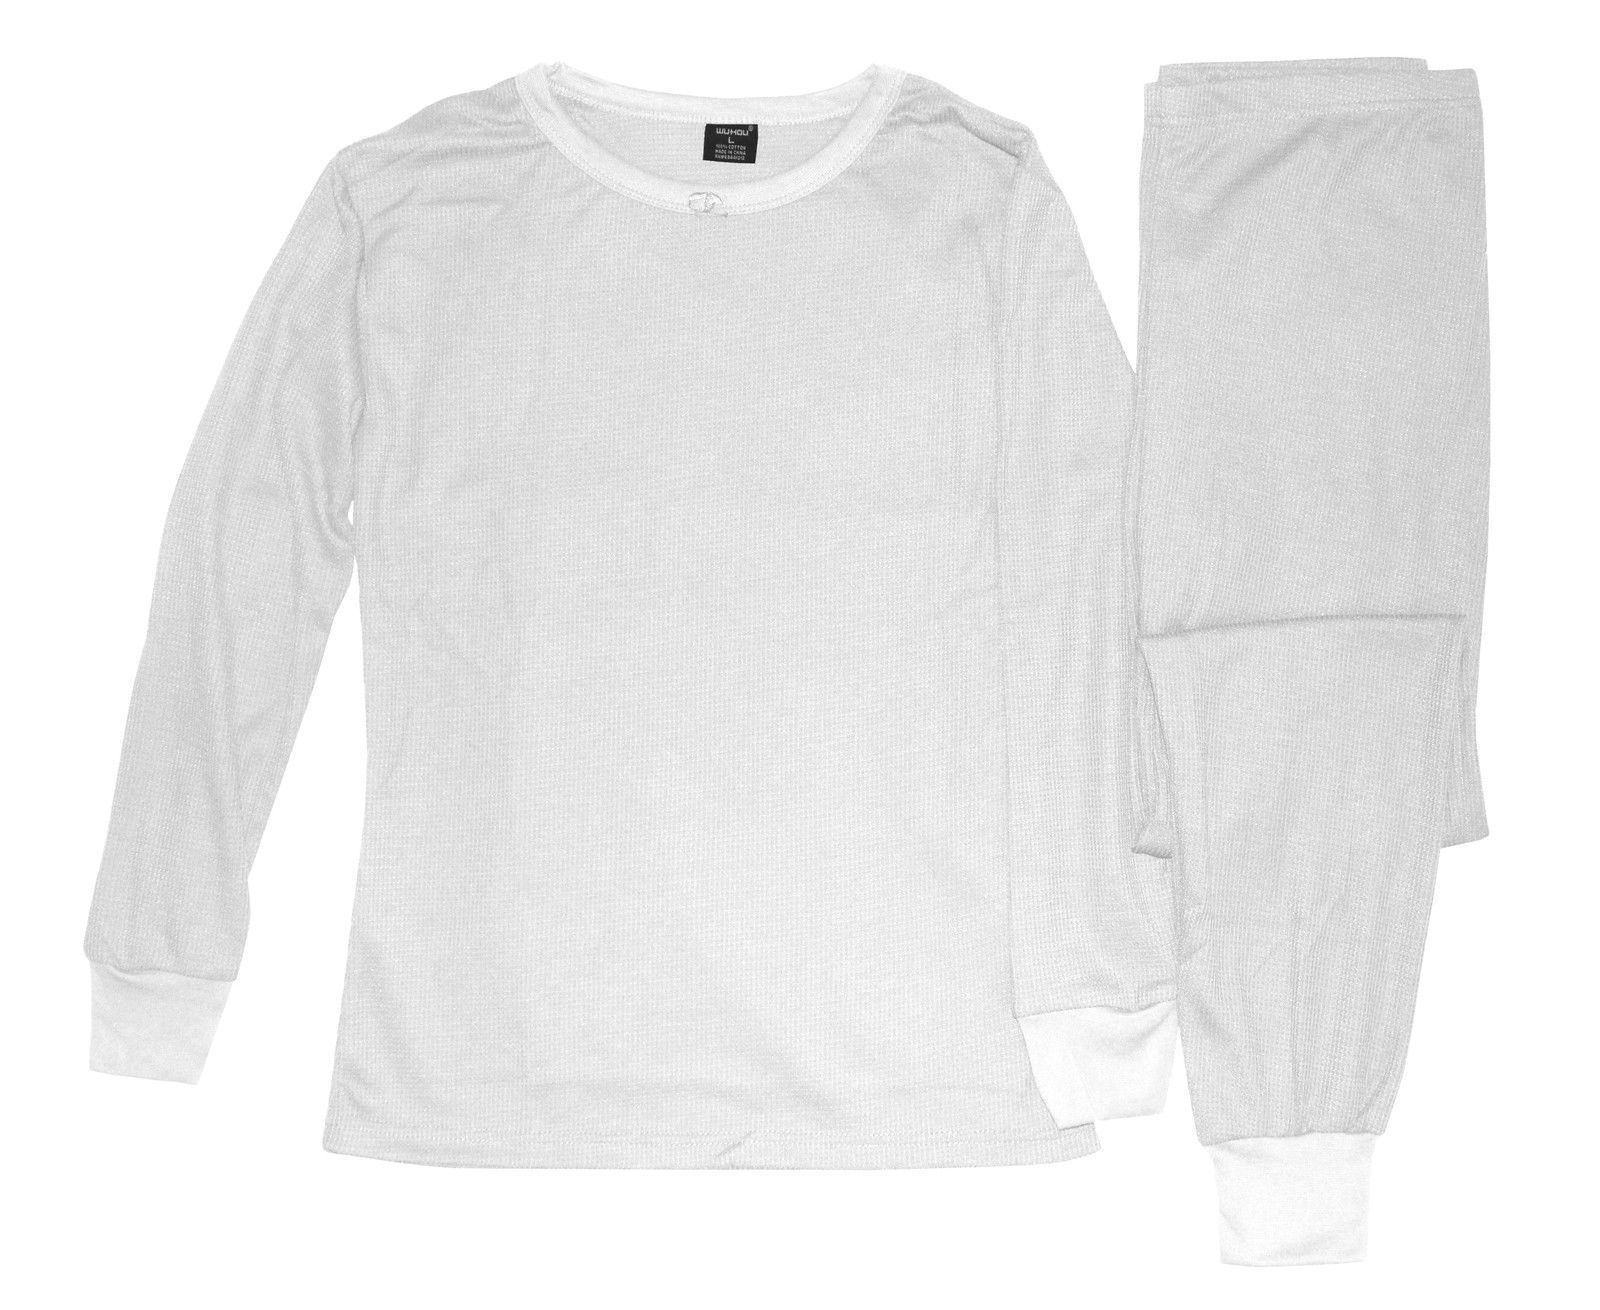 Women S 100 Cotton Light Weight Waffle Knit Thermal Top